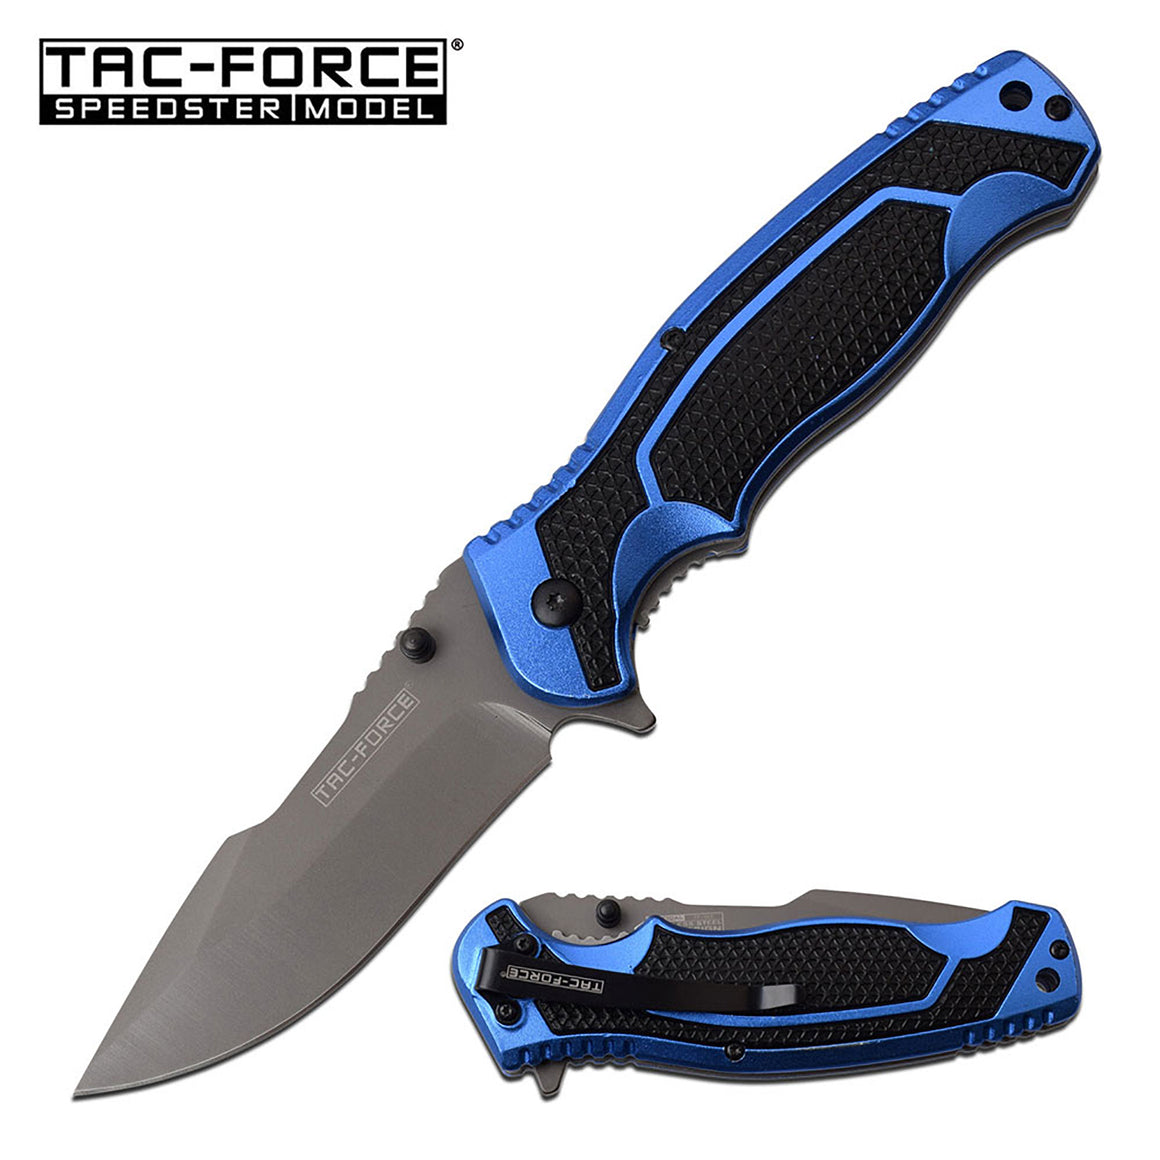 Tac-Force TF-960BL Spring Assisted Knife